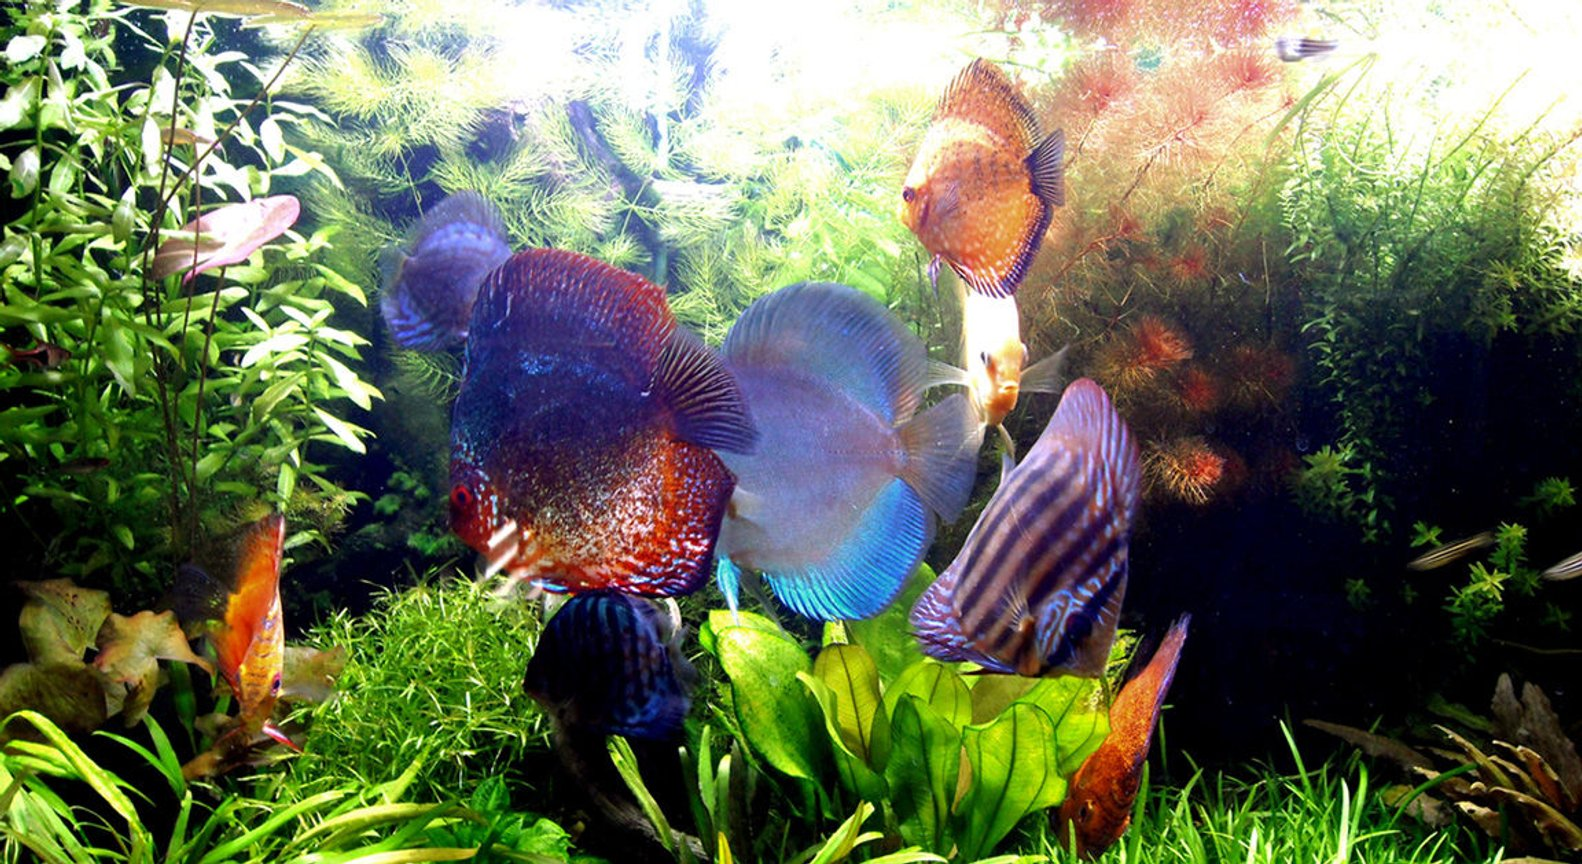 freshwater fish - symphysodon sp. - red marlboro discus stocking in 75 gallons tank - Lovely!